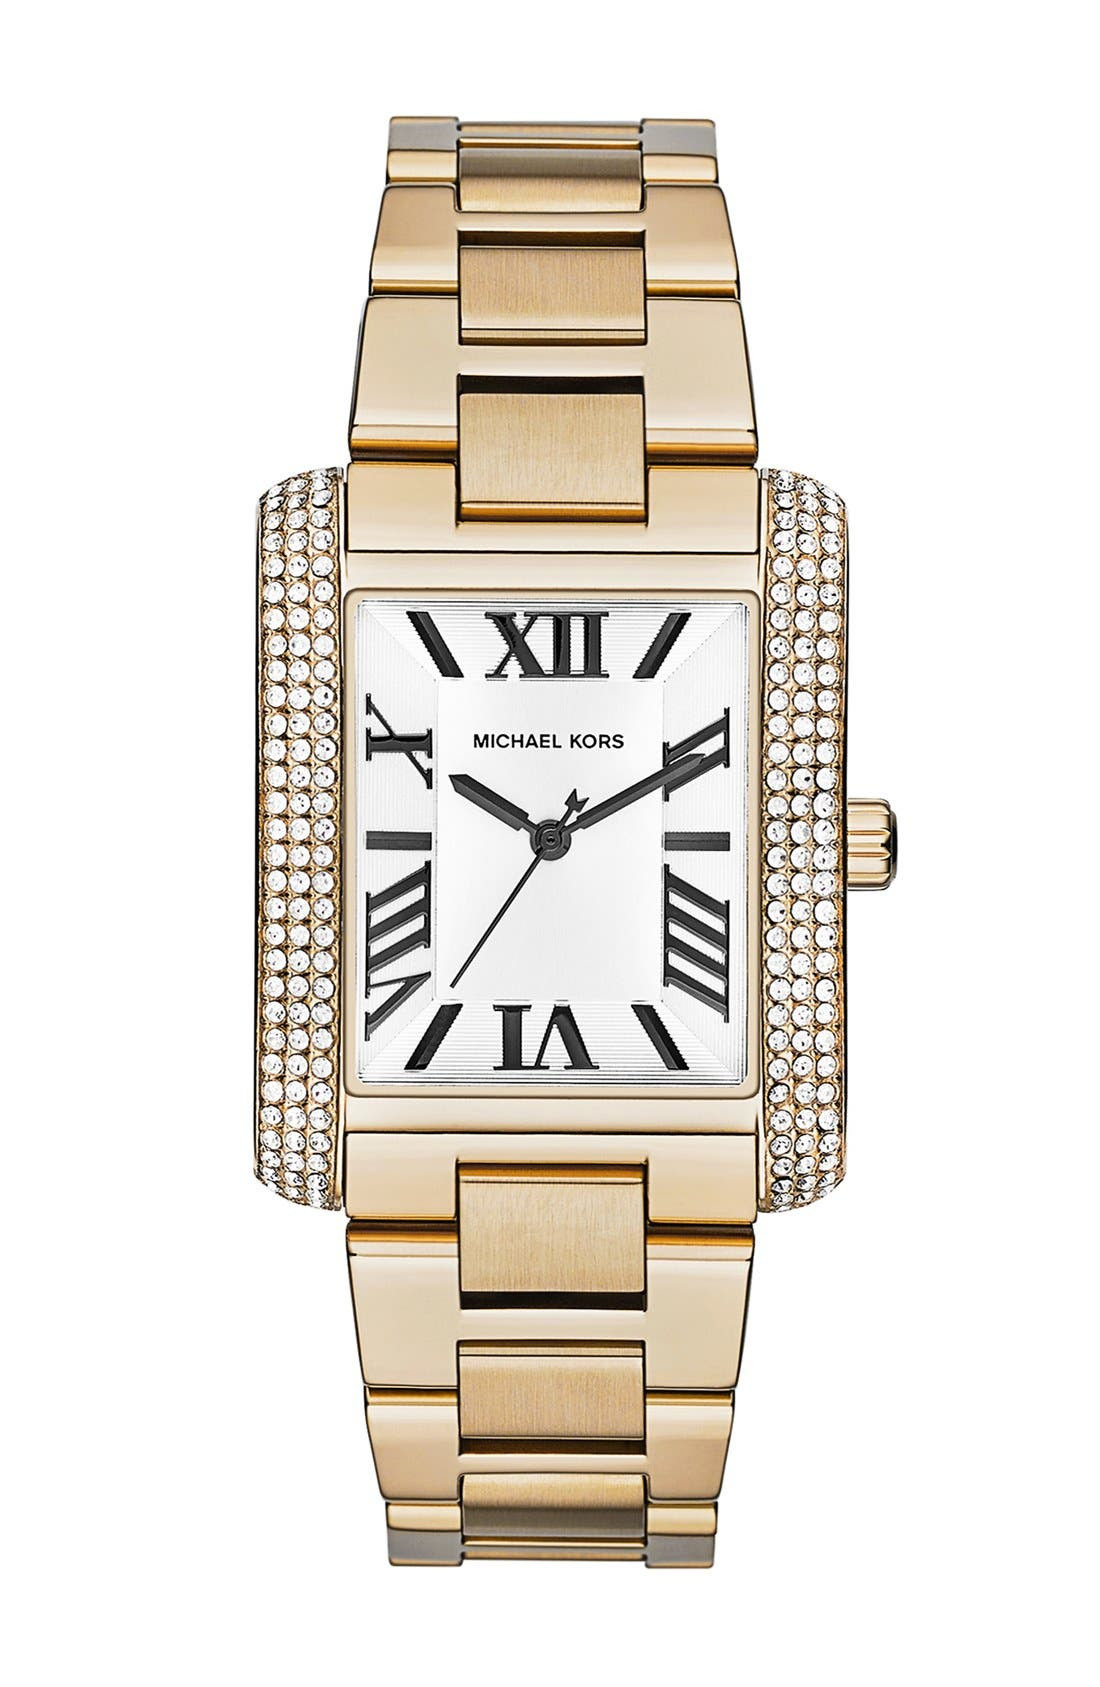 Alternate Image 1 Selected - Michael Kors 'Emery' Crystal Accent Bracelet Watch, 31mm x 40mm